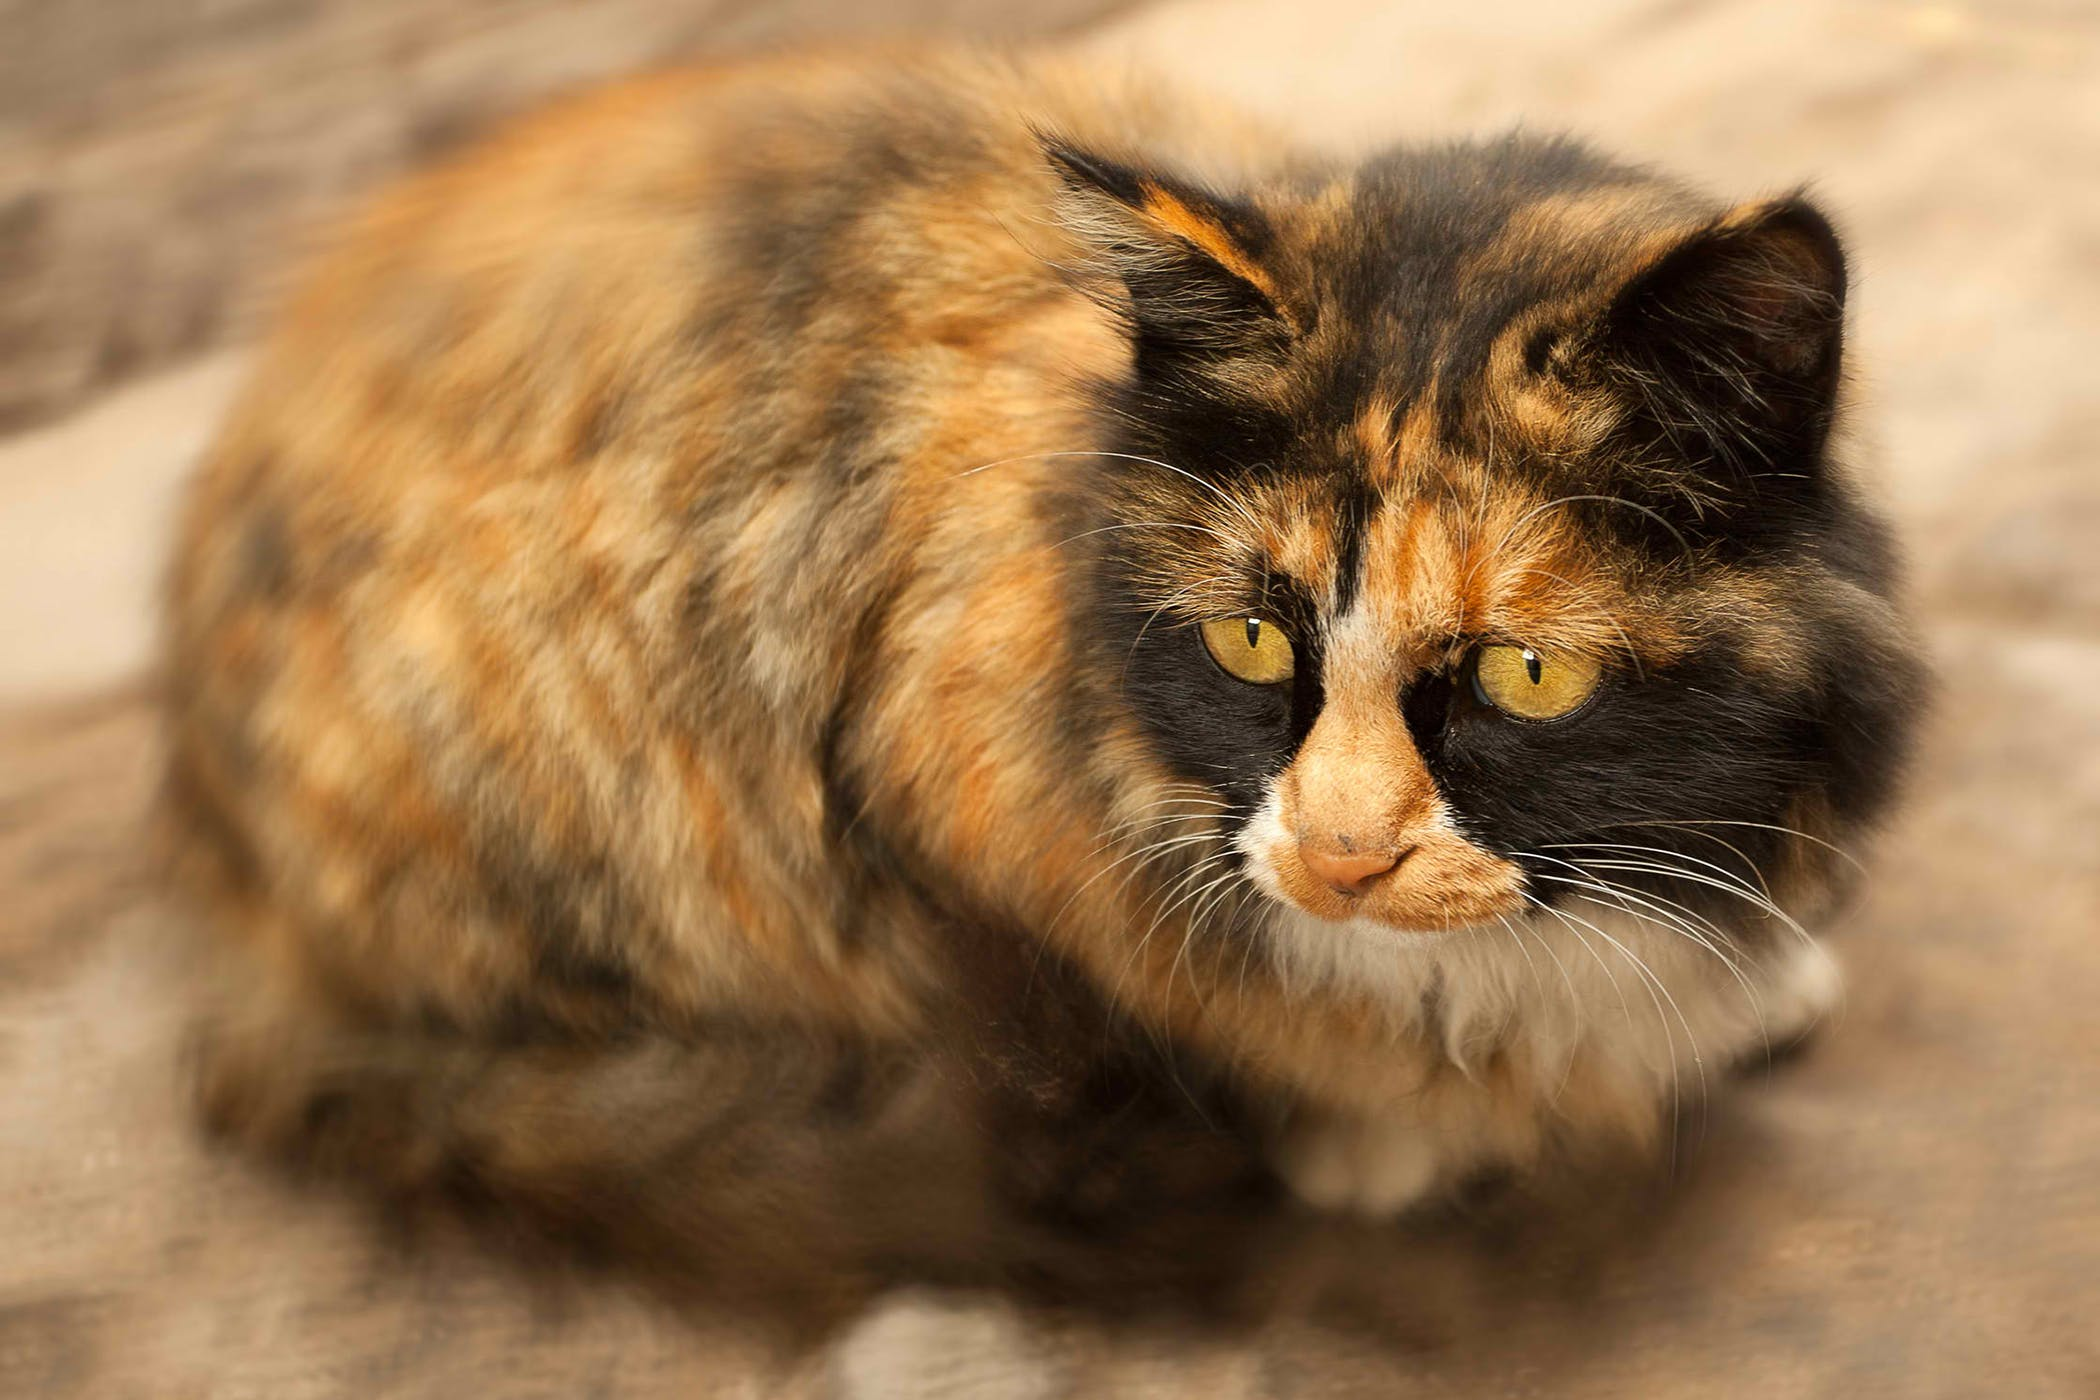 Side Effects Of Anxiety Medications in Cats - Symptoms